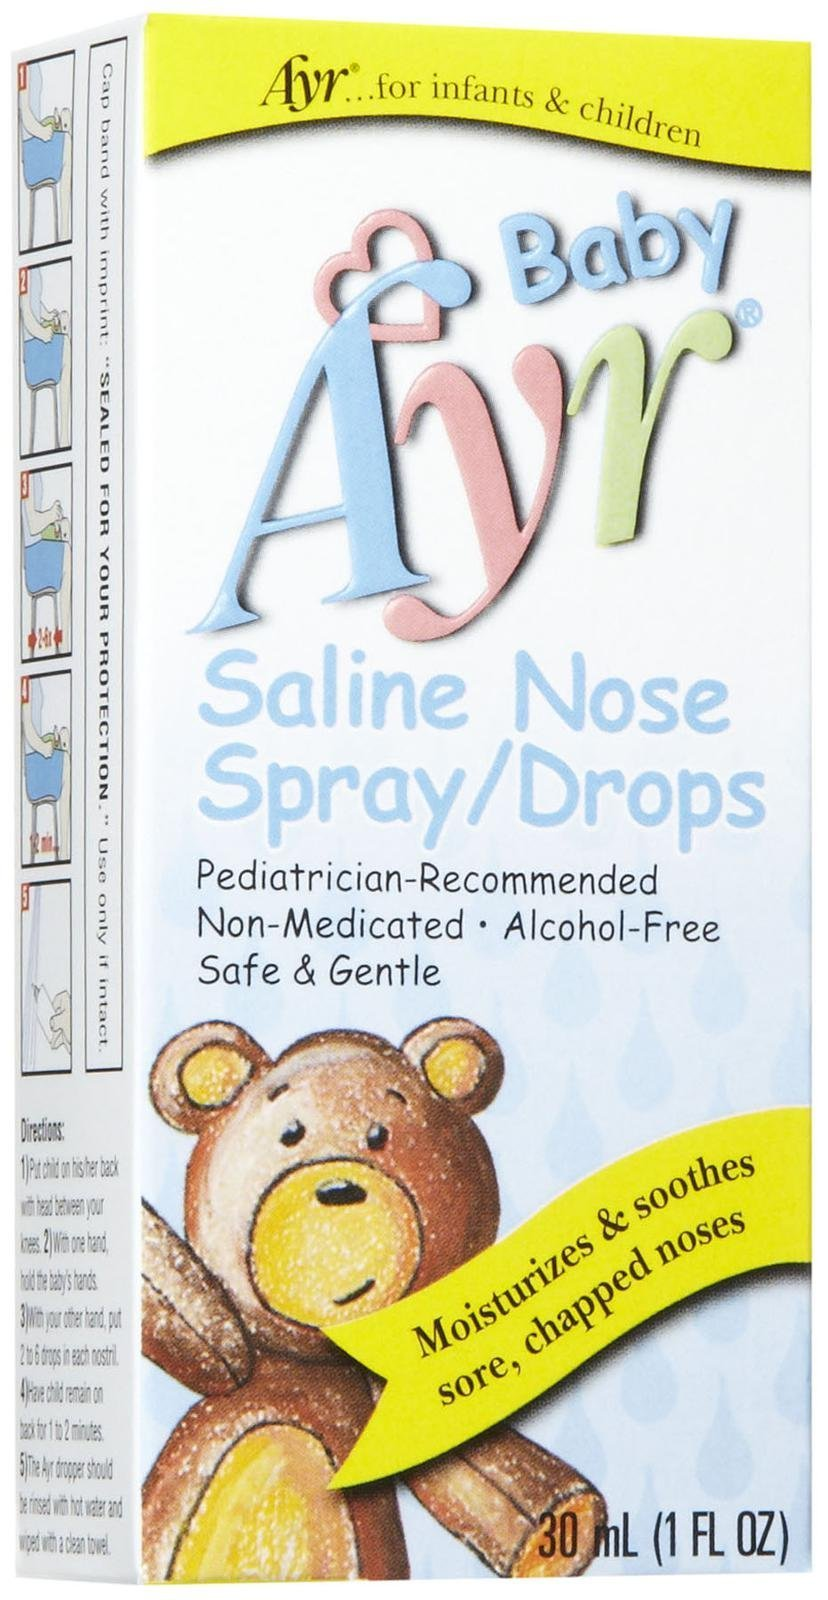 Ayr Baby Saline Nasal Spray/Drops, 1 oz